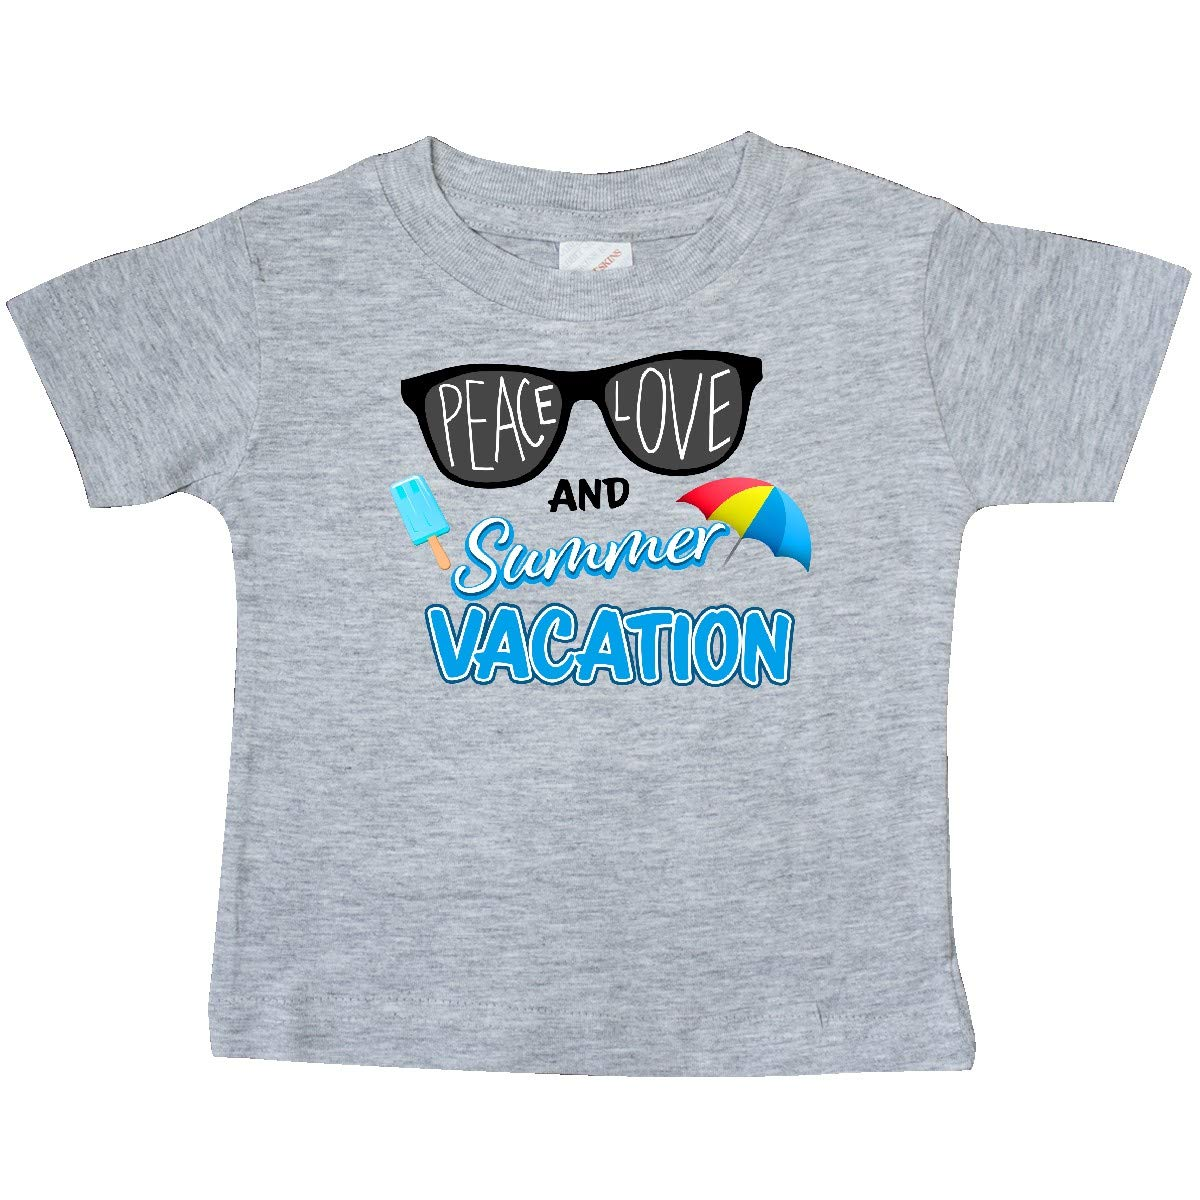 inktastic Sunglasses Peace Love and Summer Vacation Baby T-Shirt